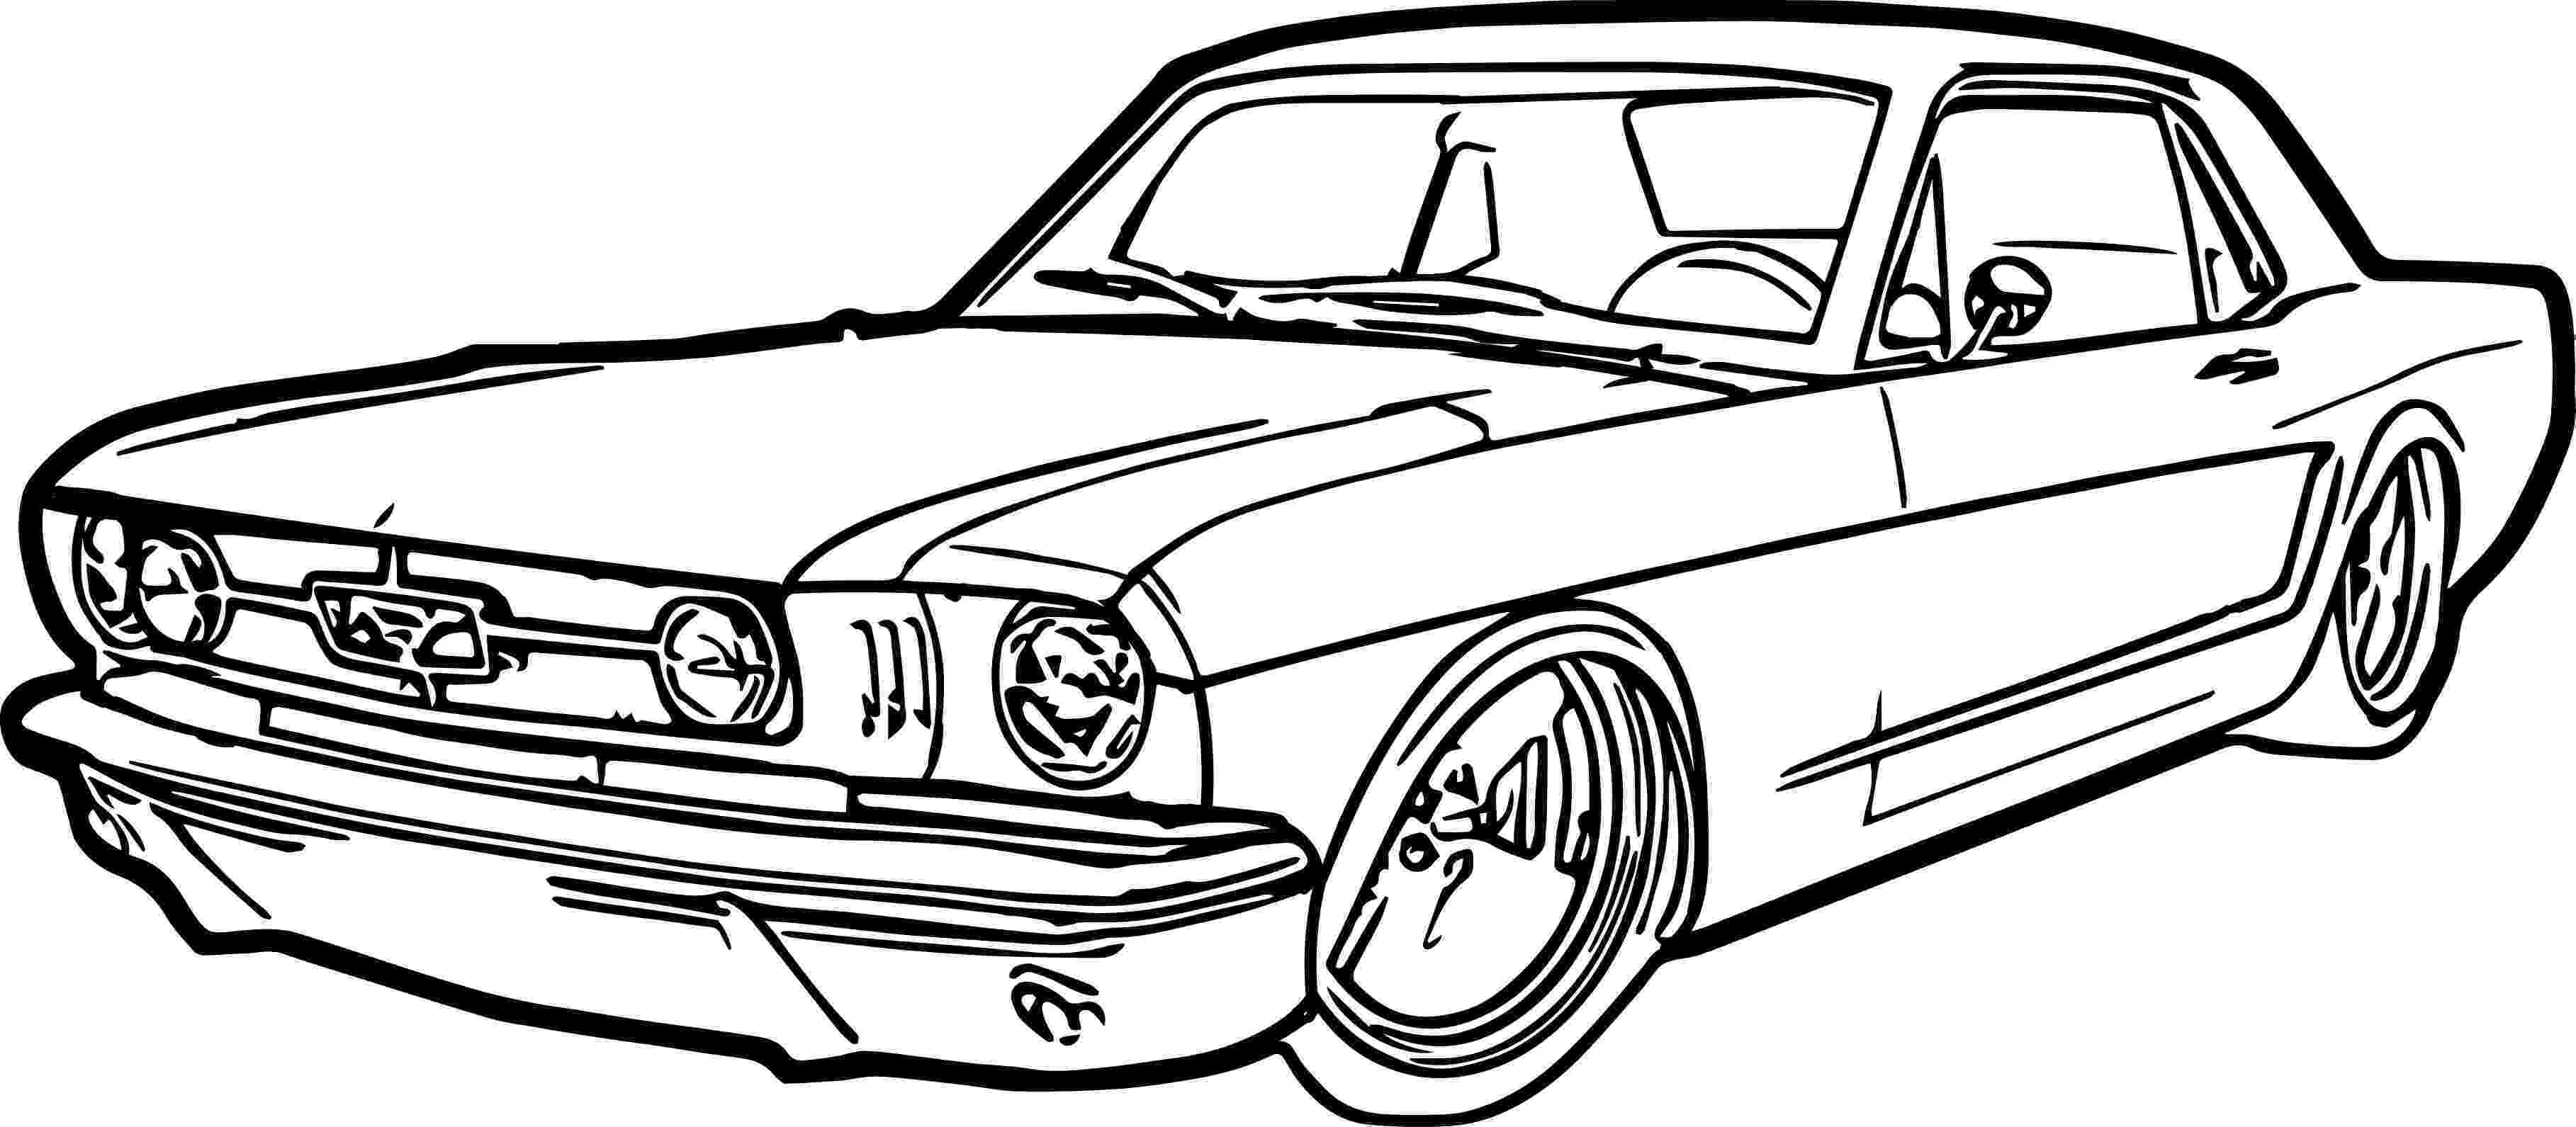 car colouring pages free printable cars coloring pages for kids cool2bkids car colouring pages